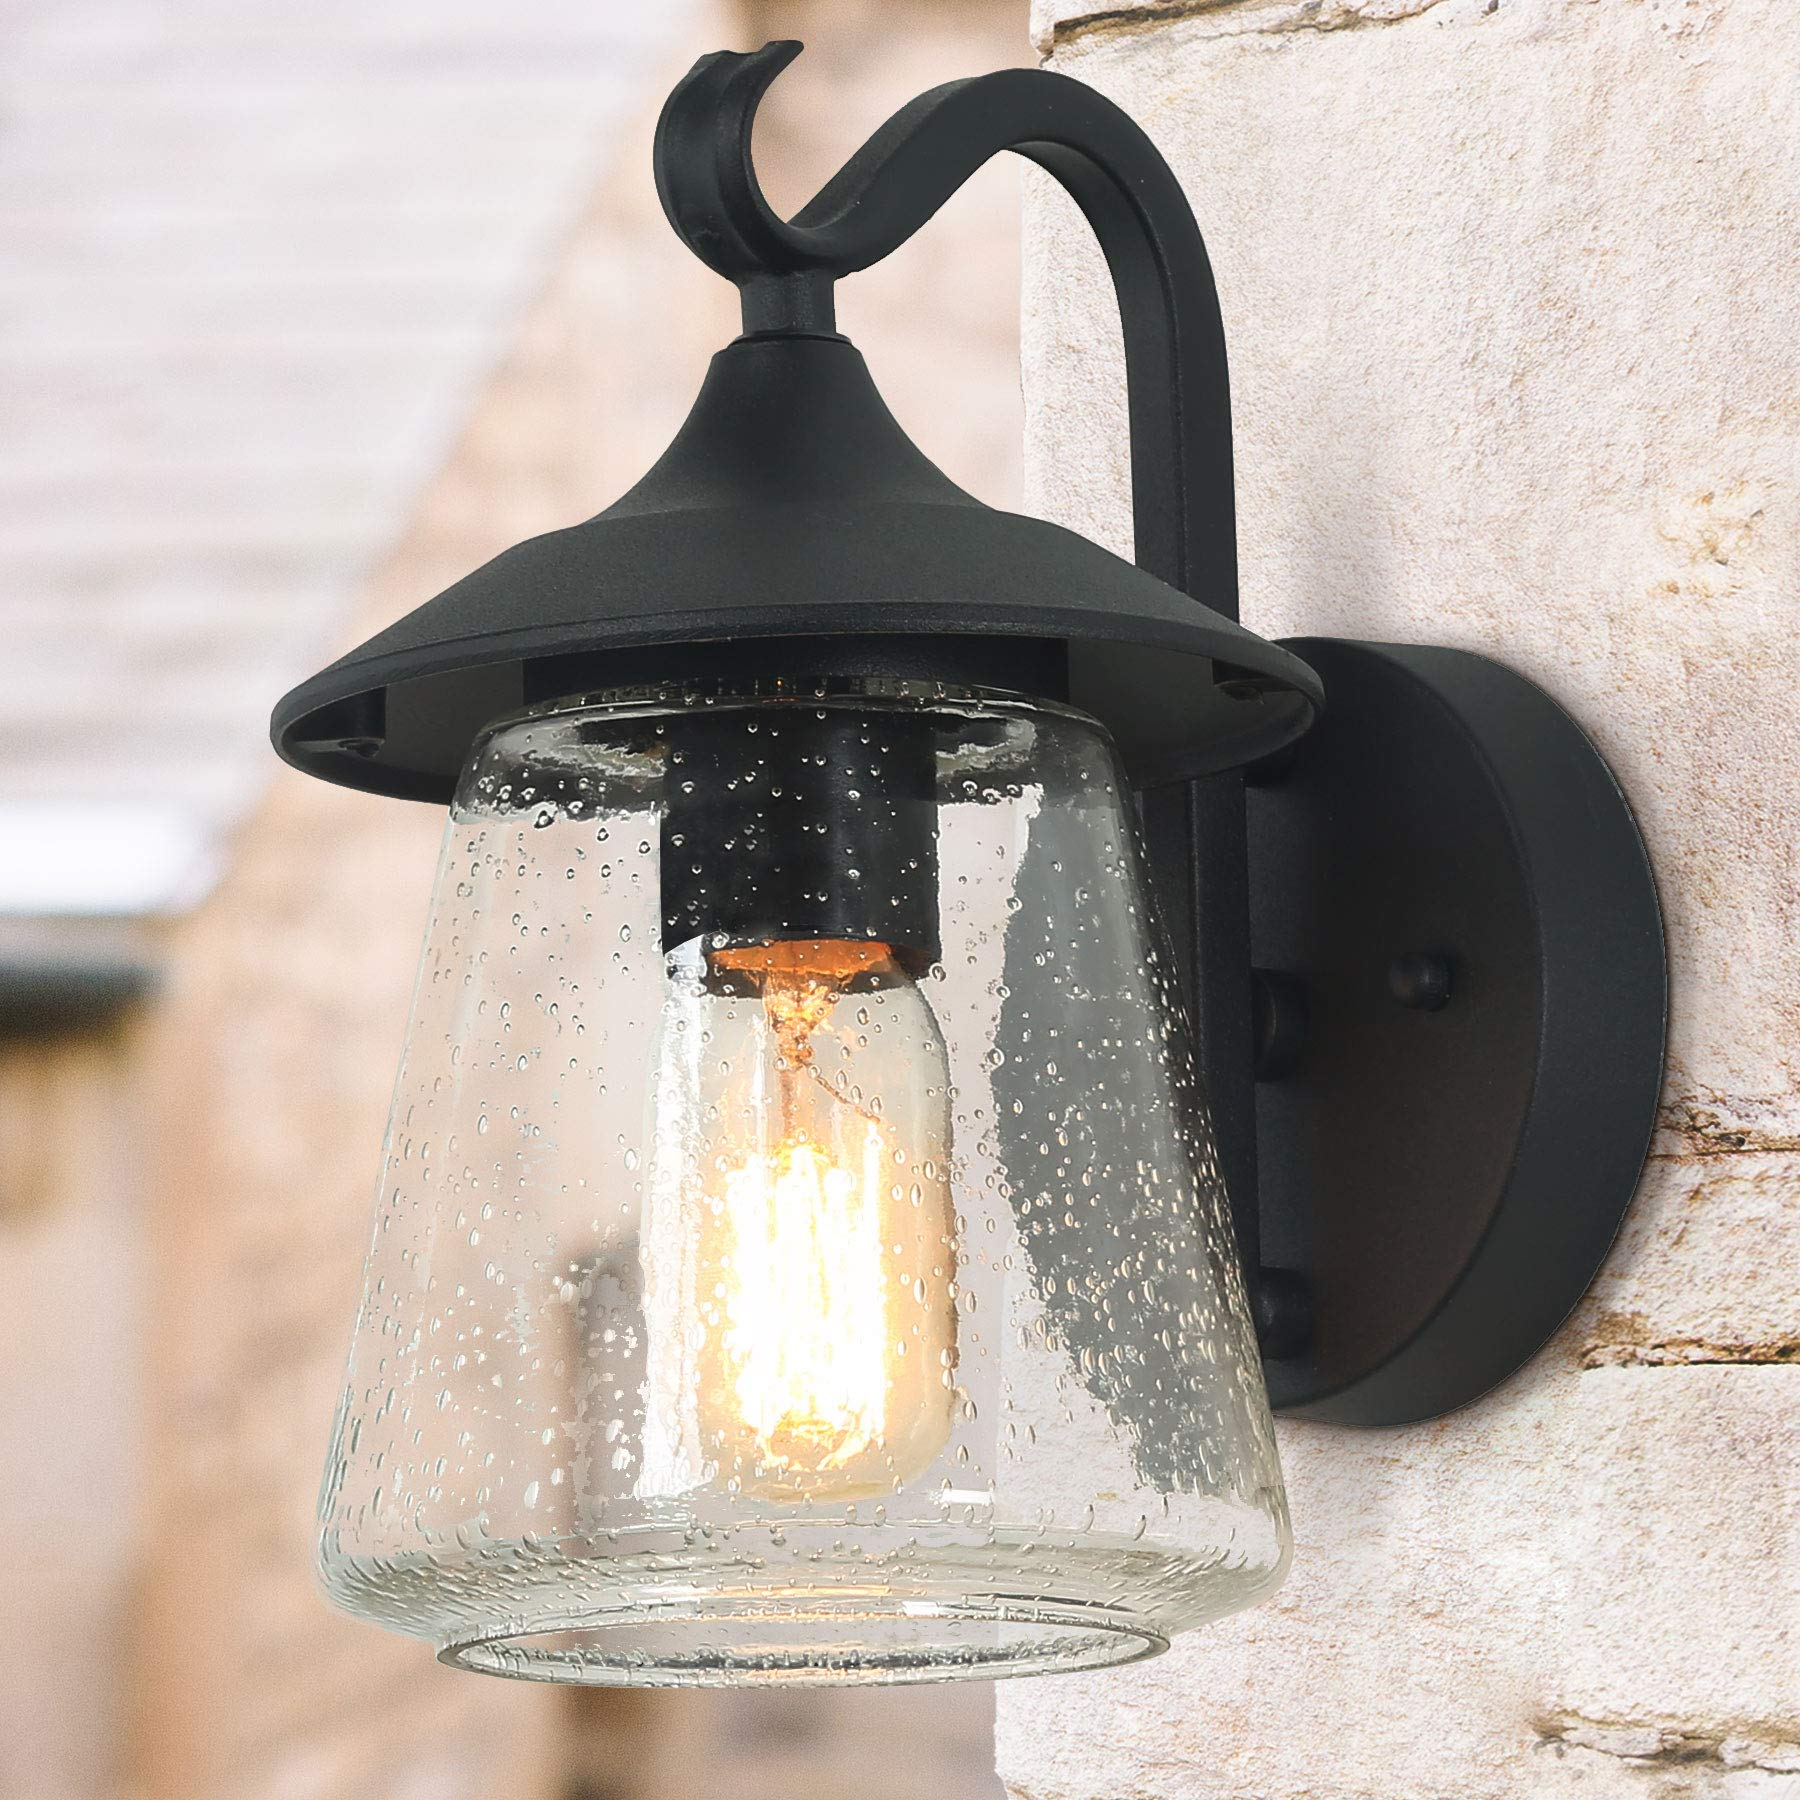 Log Barn Outdoor Wall Light,Farmhouse Exterior Lantern in Black with Seeded Glass for Porch Barn A03356, 1-Light Light by Log Barn